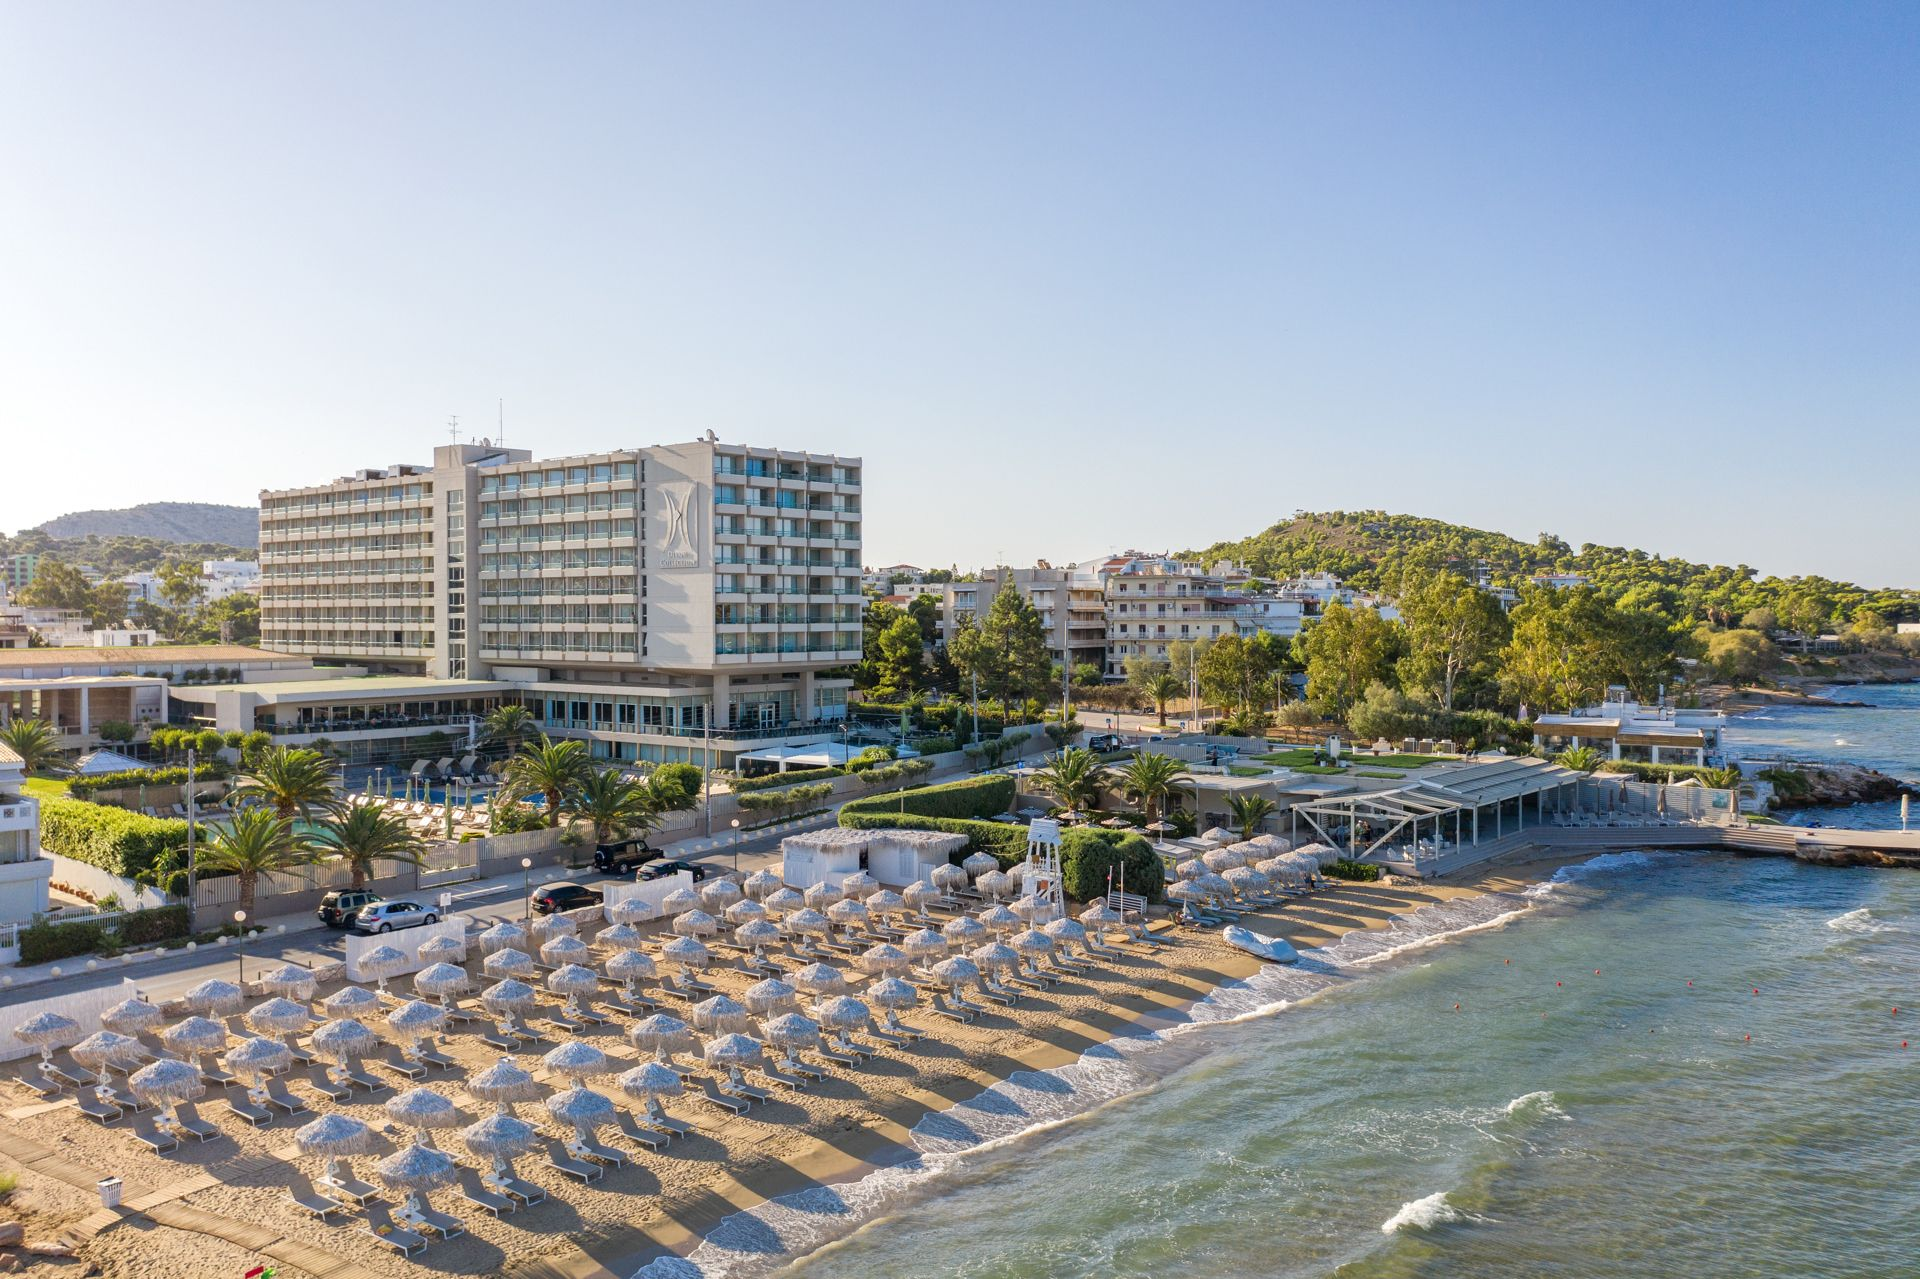 Divani Apollon Palace & Thalasso | Athens Riviera - Offers - Long Stay Offer with PCR test